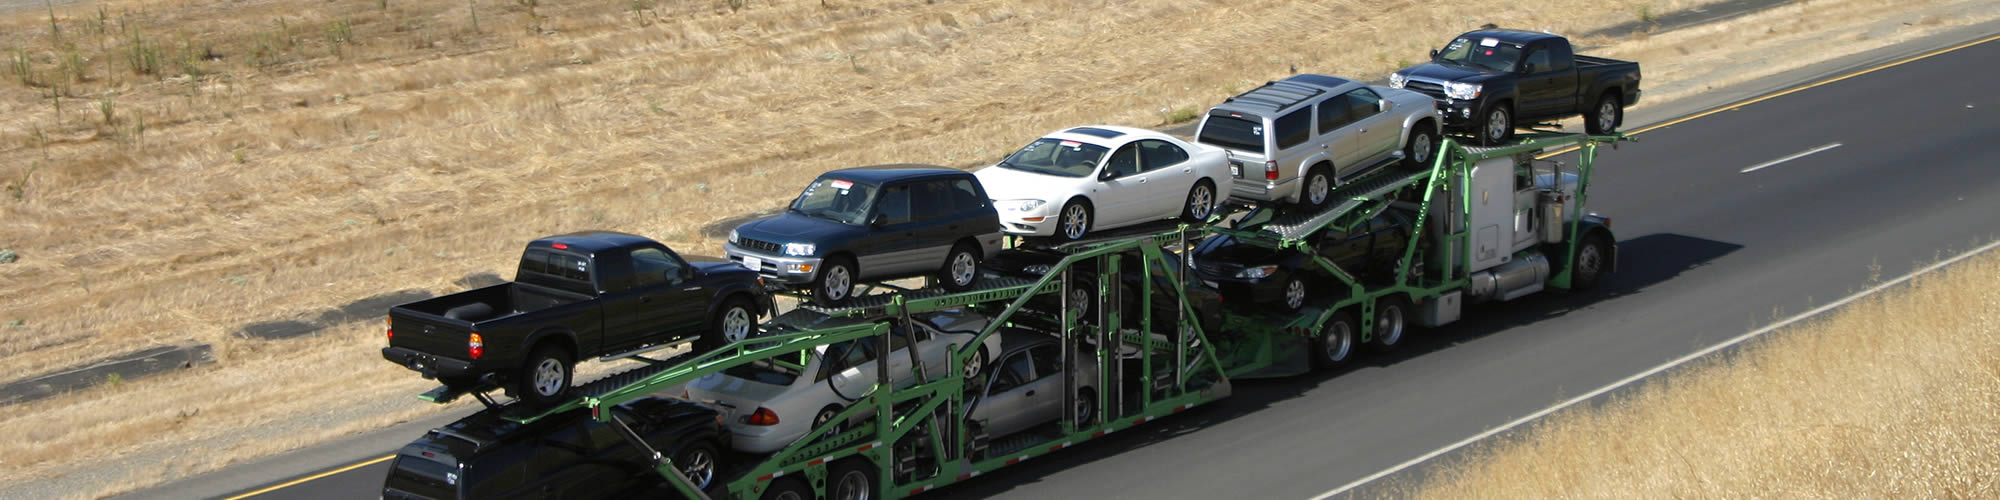 Loveland Auto Auction Transportation Services